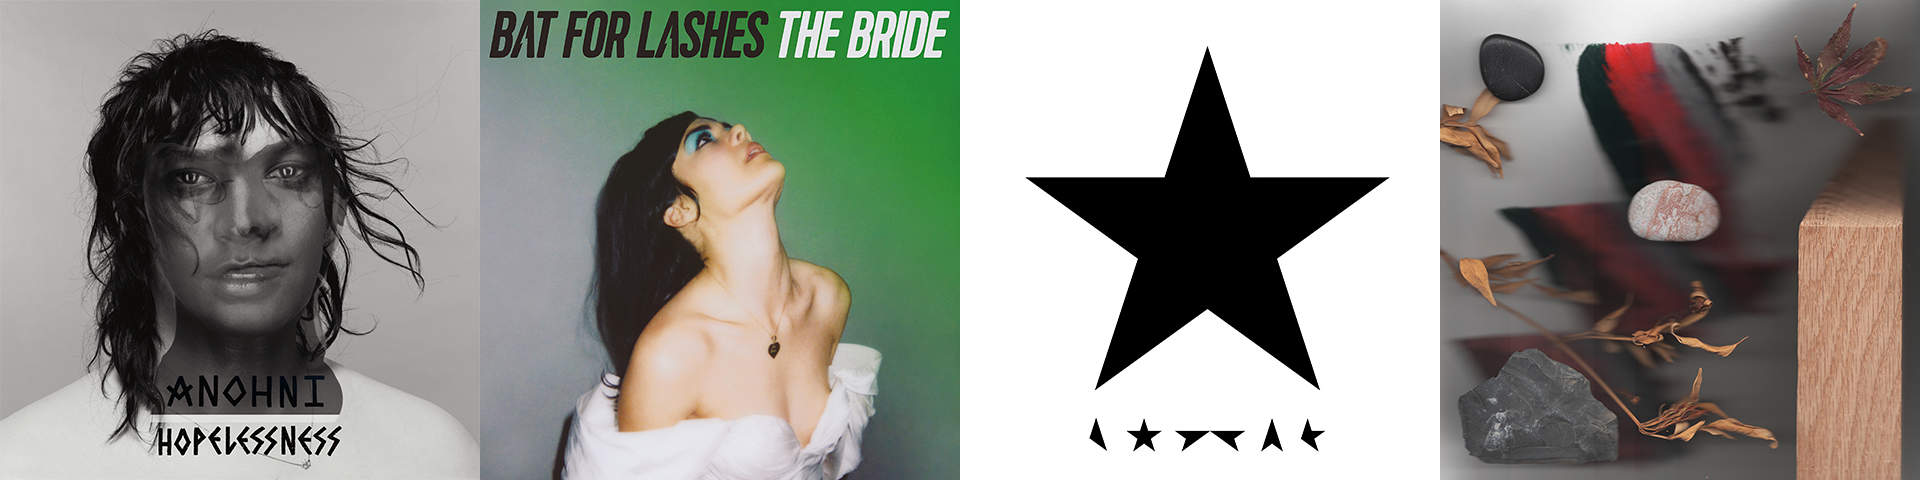 Album covers for Anohni Hopelessless, Bat for Lashes The Bridge, David Bowie Blackstar and Jamie Woon Making Time